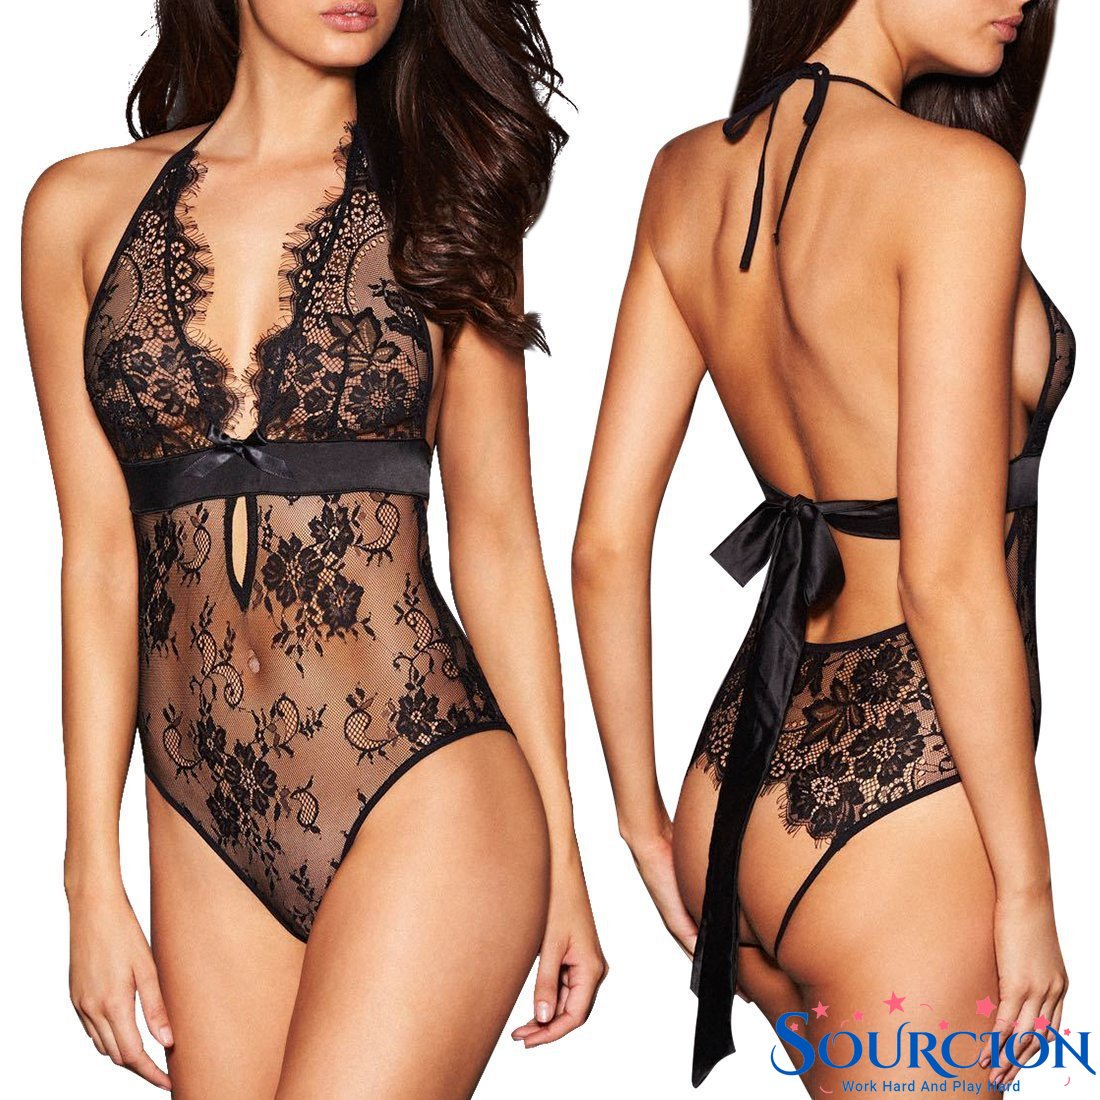 Sourcion Erotic Lingerie Sexy Porno Costumes Lace Siamese Perspective Three-Point Underwear G-string Clothes